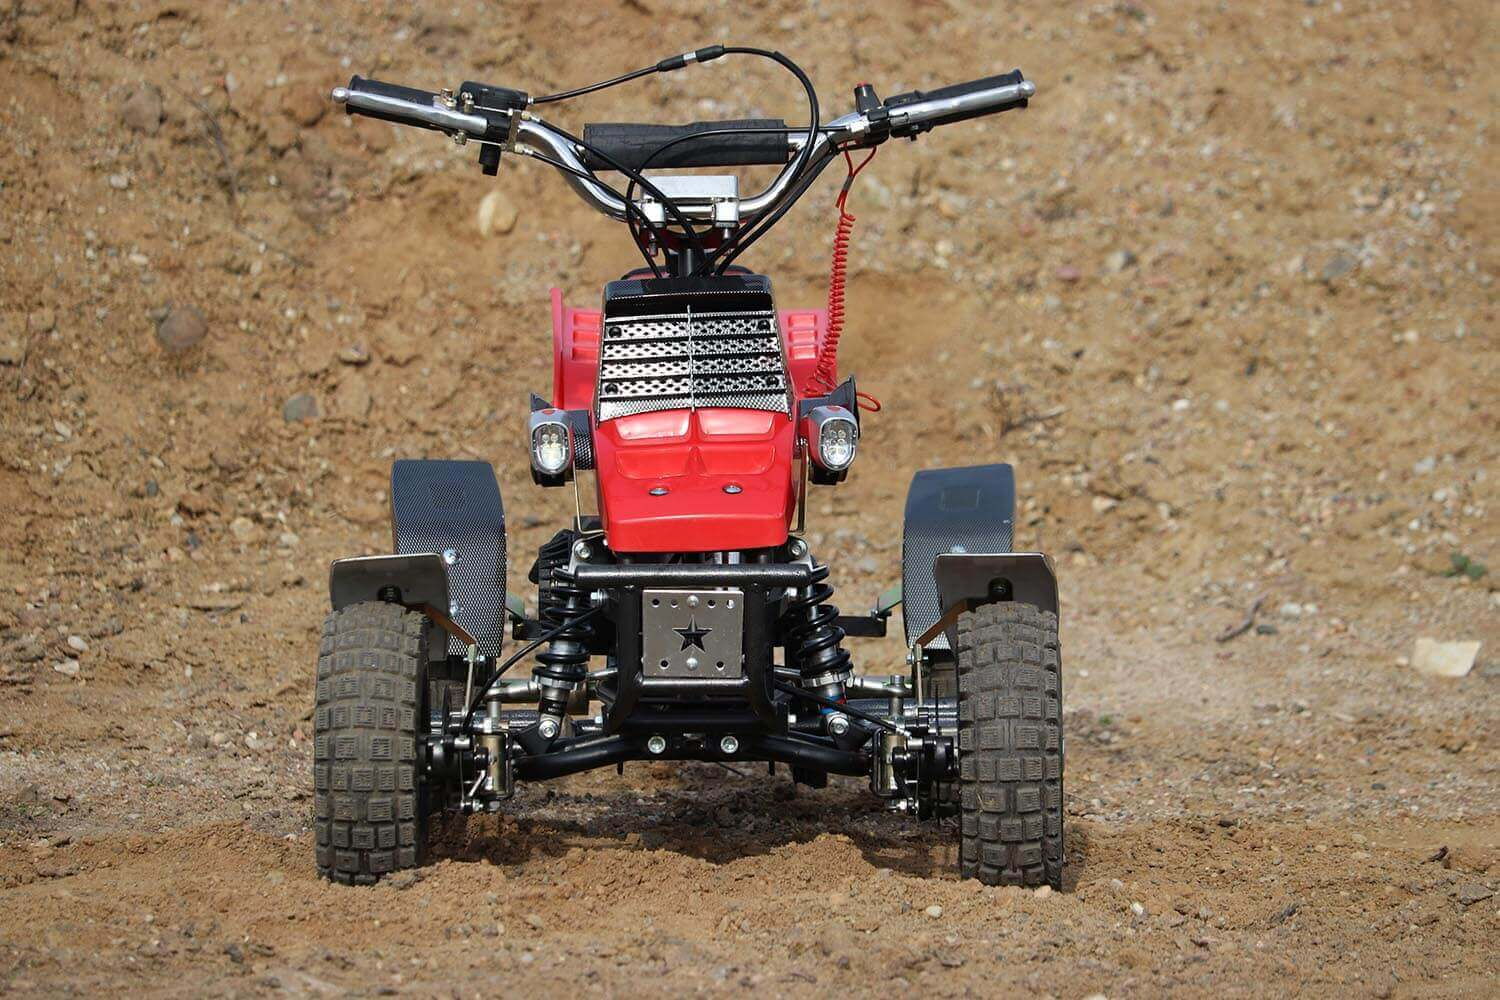 Quadro 49cc, 50cc Mini Yamaha Banshee Quad for Kids from Nitro Motors, Mini Bikes Store 2